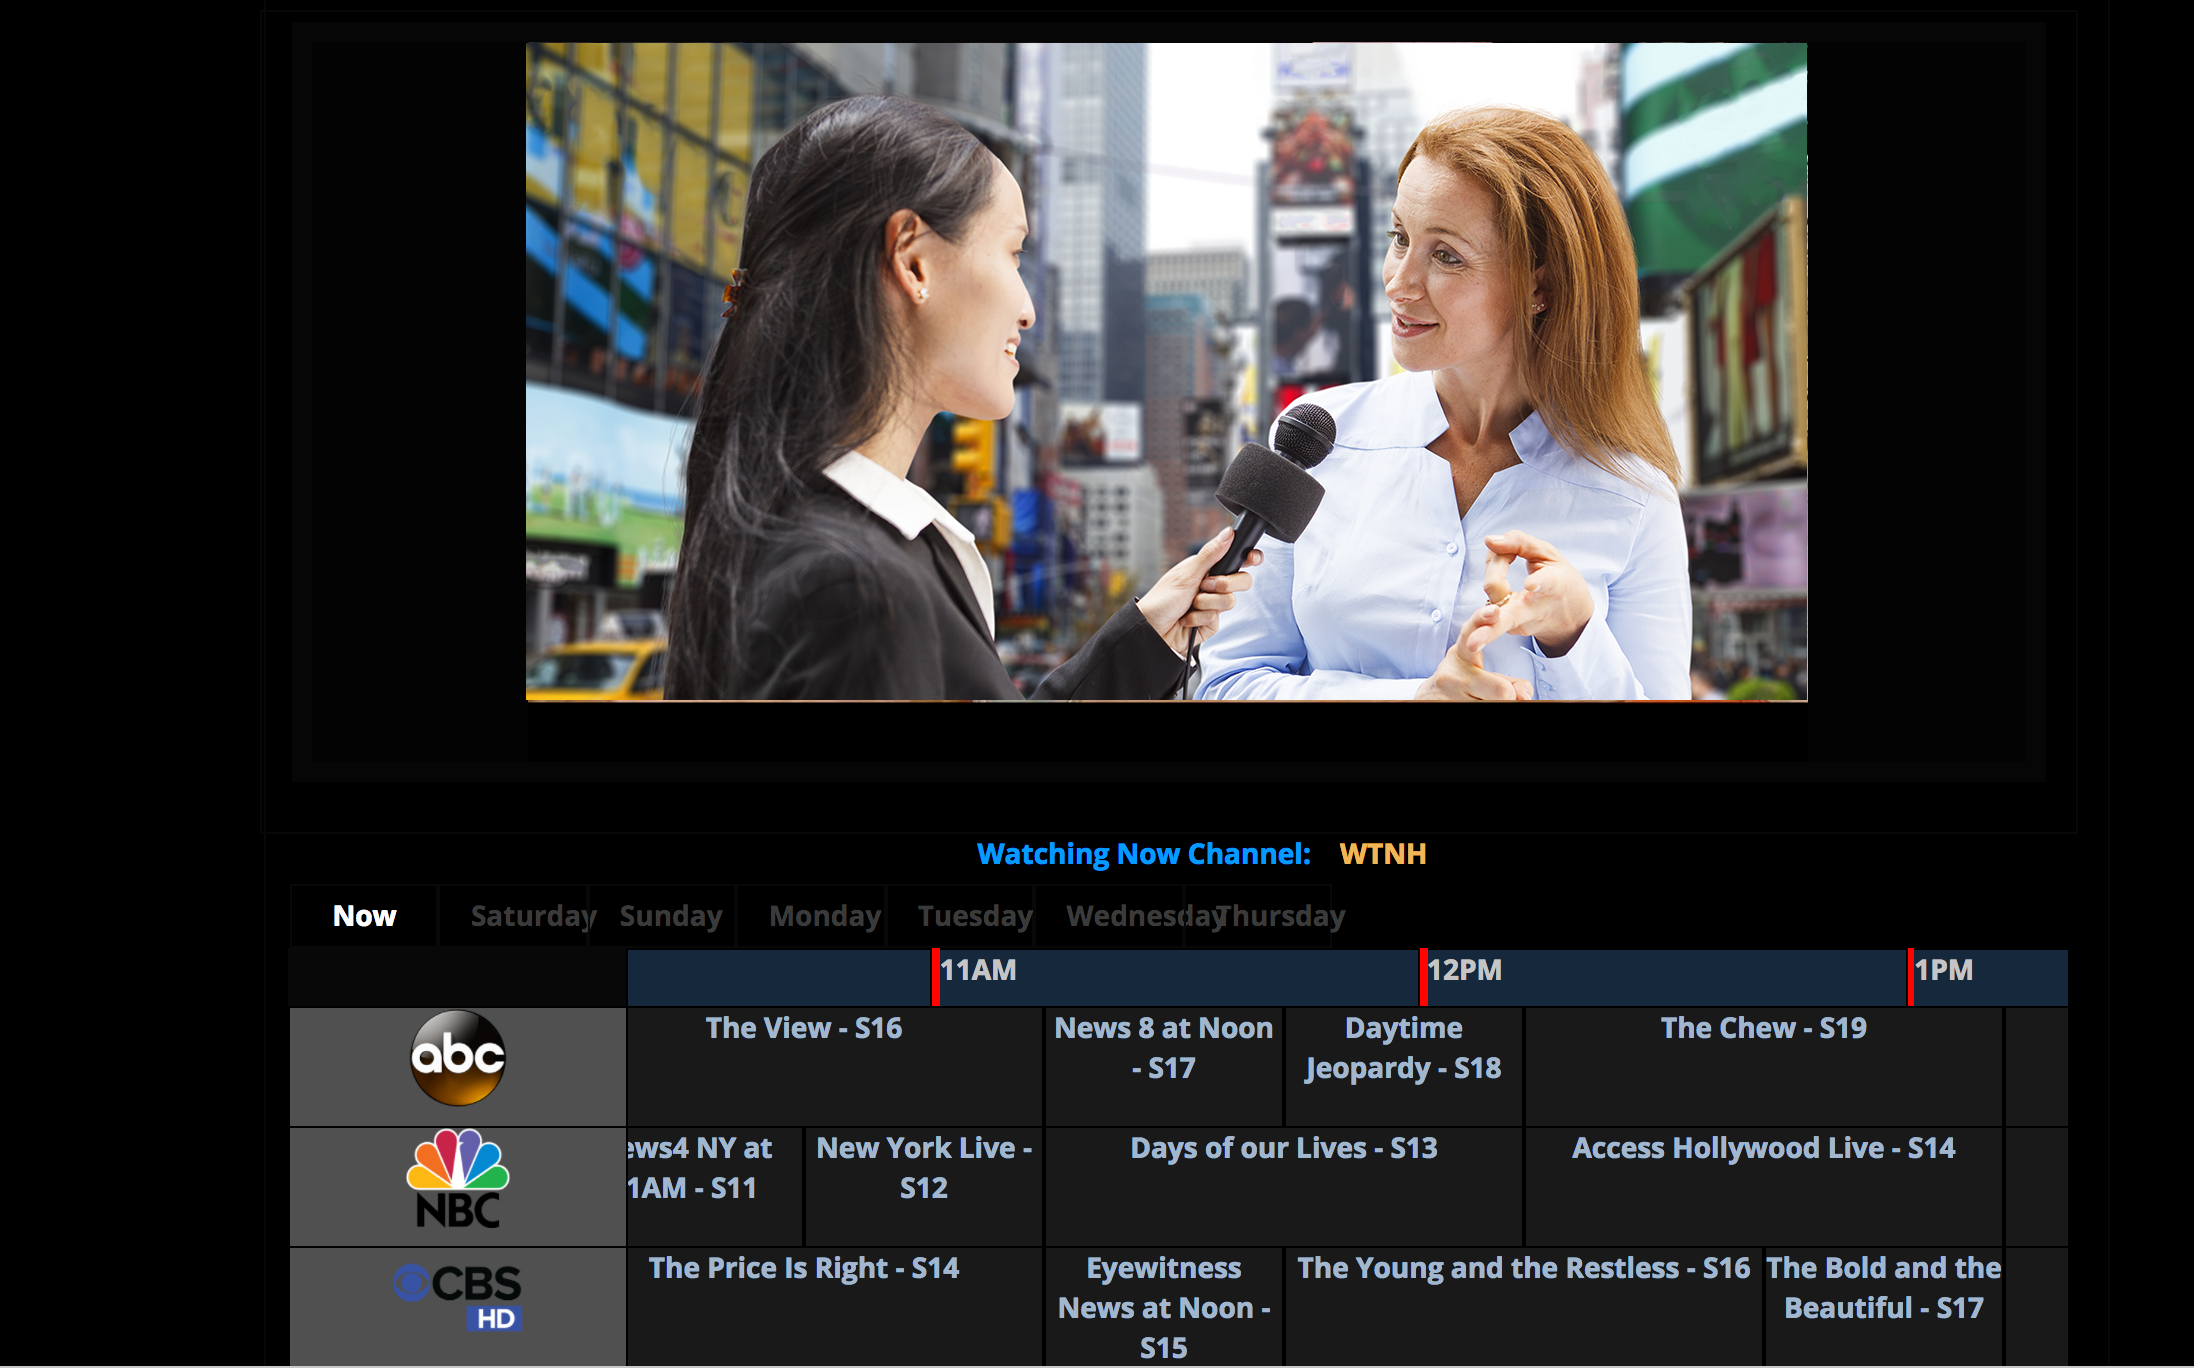 TV Guide and Recording